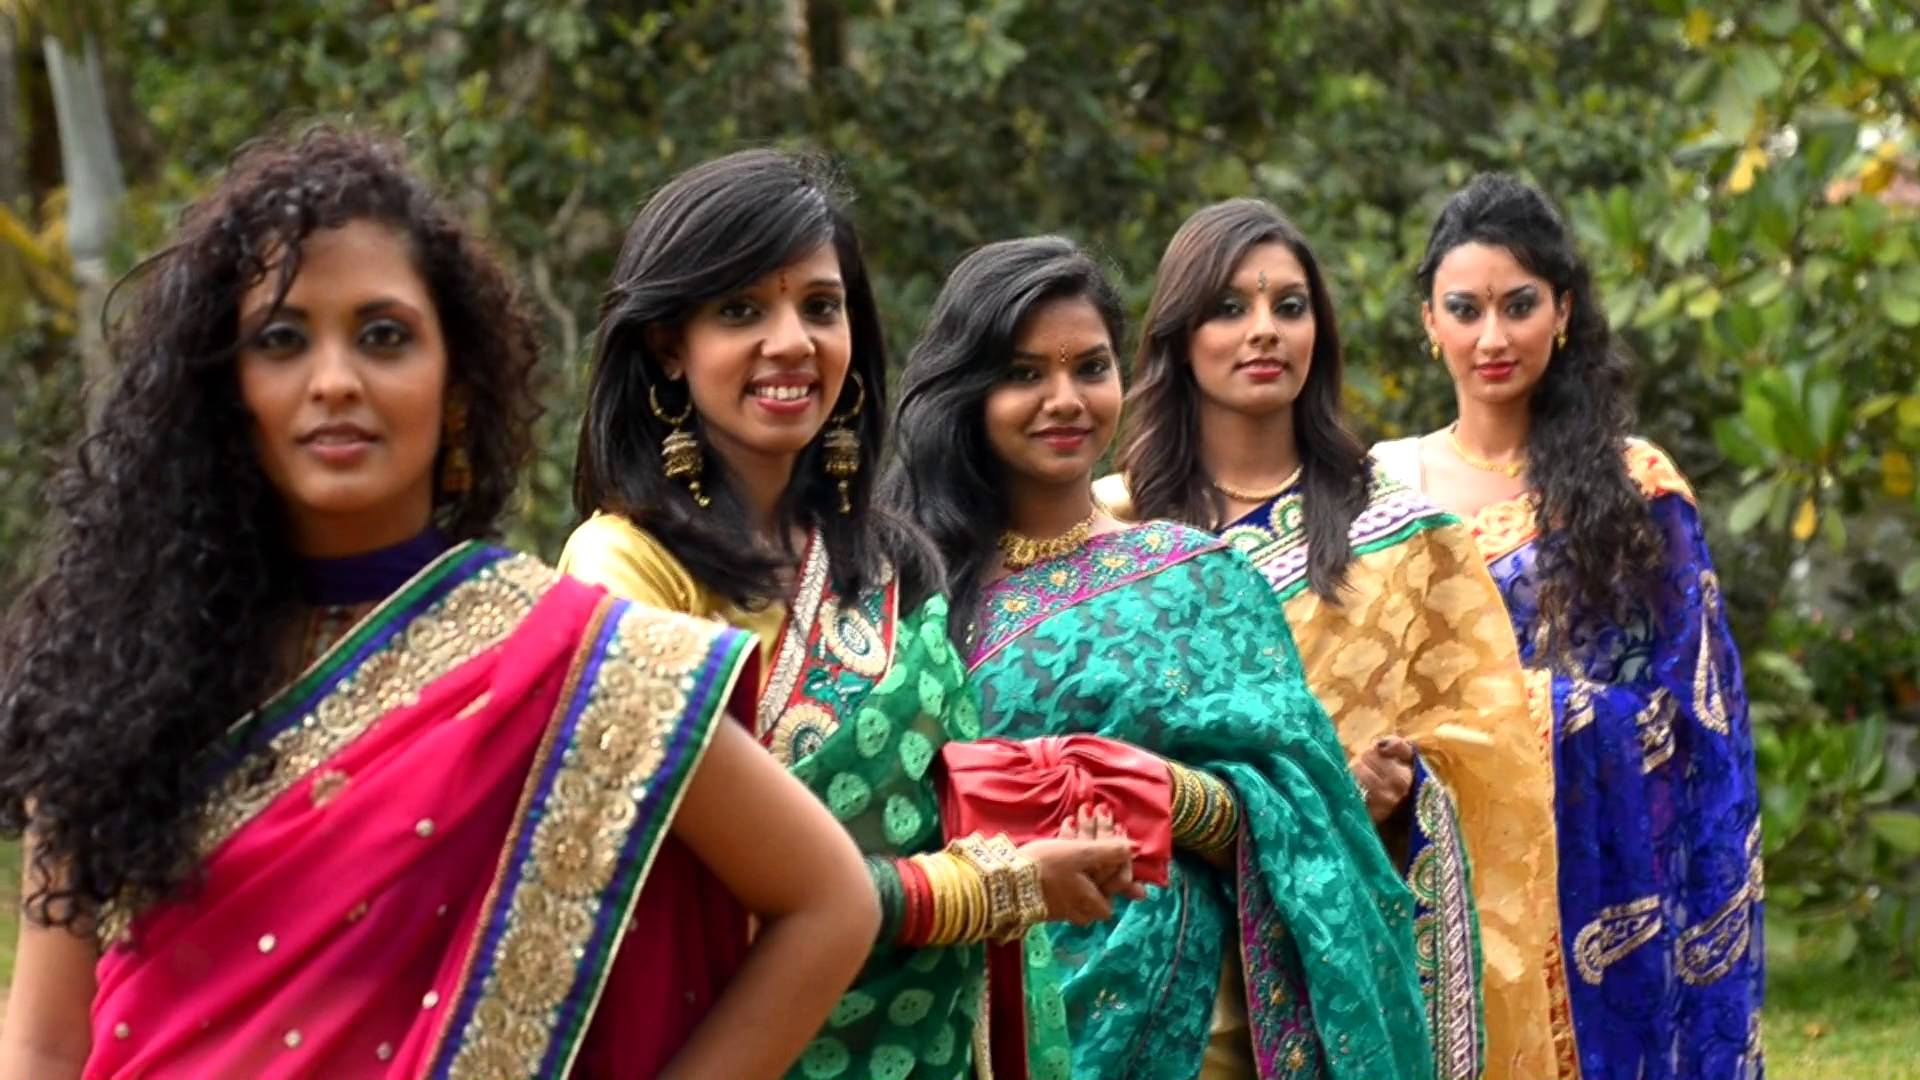 hindu single women in calistoga The nearly 73 million single women in india today have a social media presence that sounds cool but real life is a little more complicated.